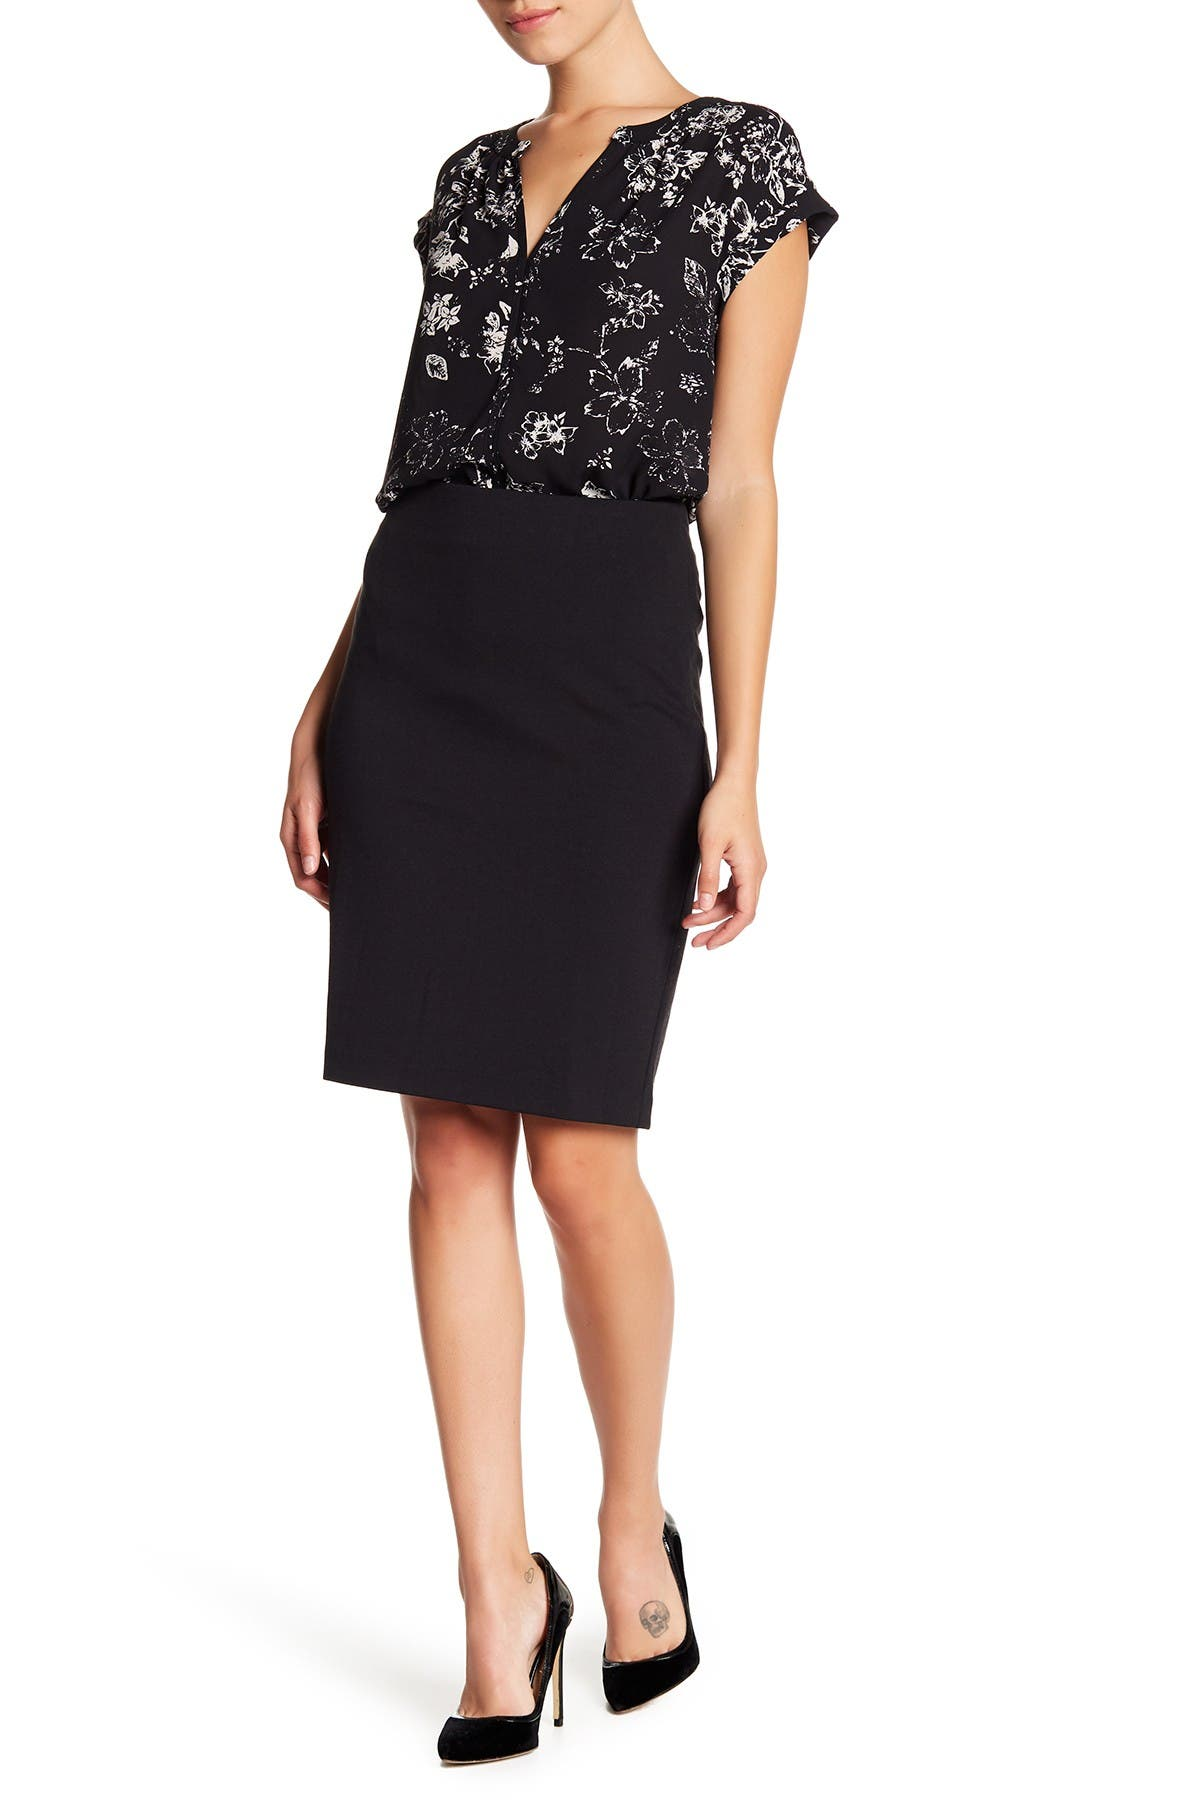 Image of Philosophy Apparel Solid Ponte Pencil Skirt